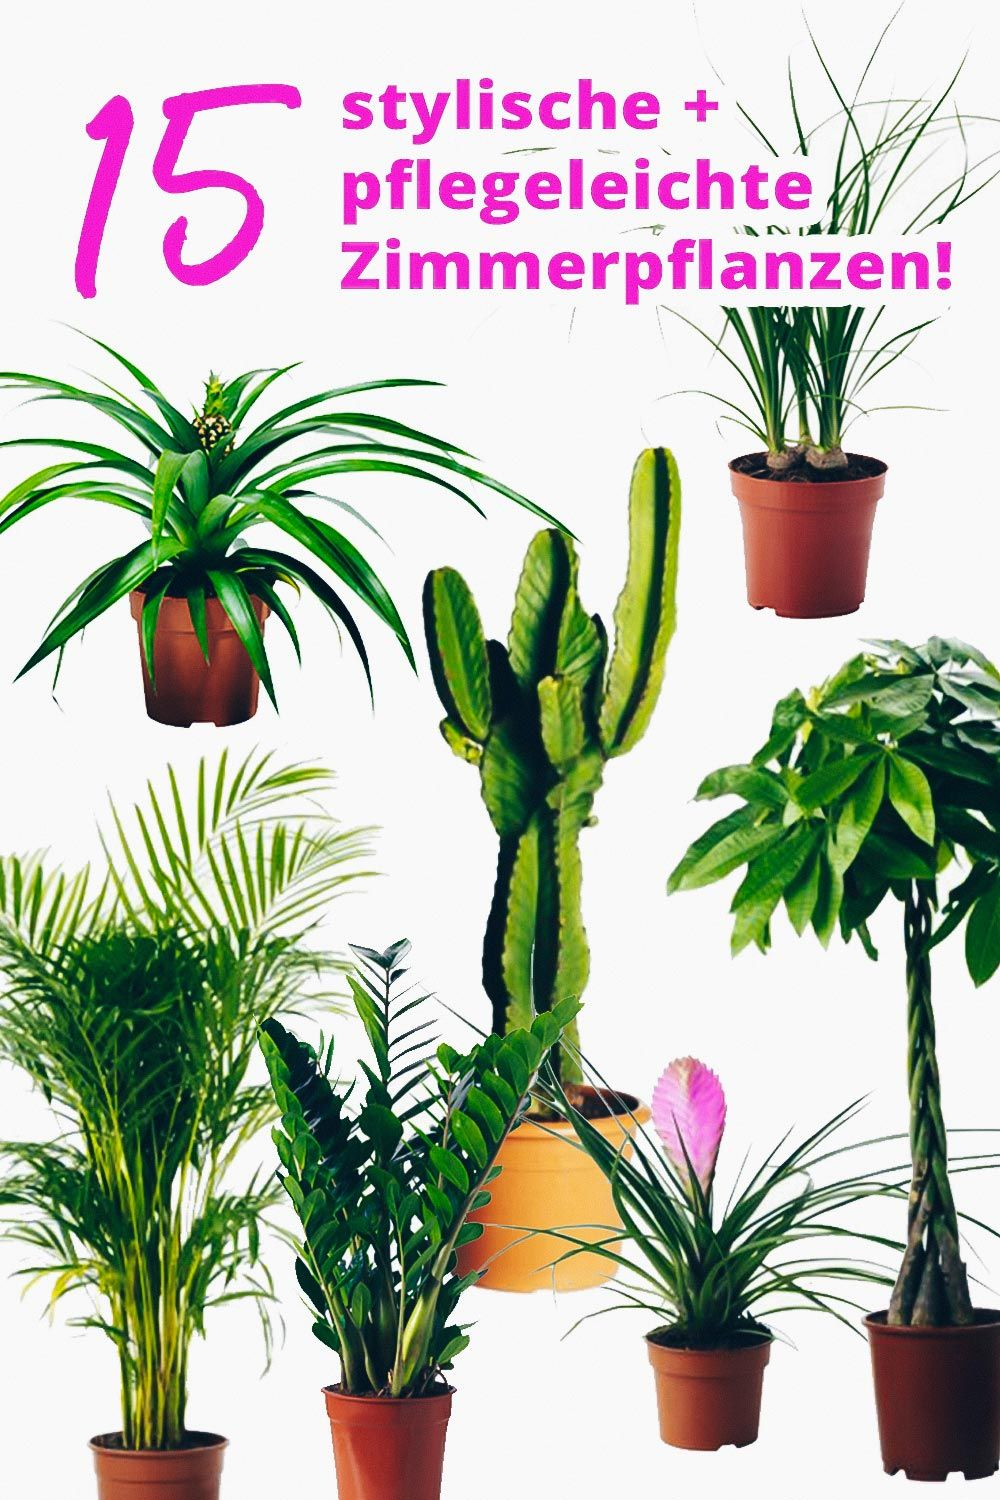 der pflanzen guide 15 stylische und pflegeleichte zimmerpflanzen urban jungle pinterest. Black Bedroom Furniture Sets. Home Design Ideas